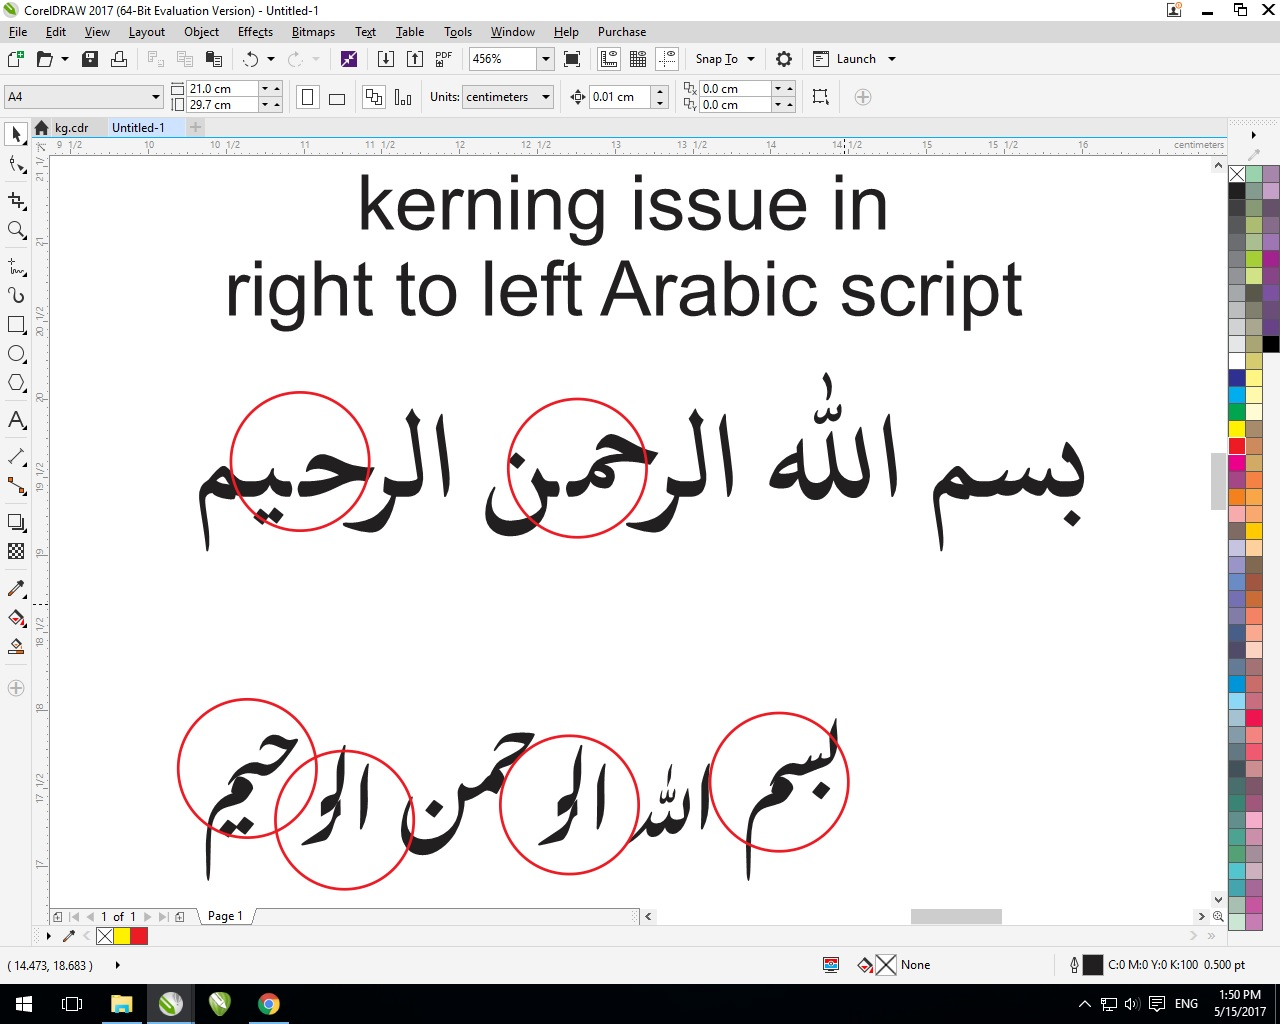 Coreldraw version 12 - Coreldraw 7 8 And 2017 Has Support For The Urdu And Arabic Script But Unfortunately I Didnt Get Time To Report This Issue Early Below Is The Attached Image